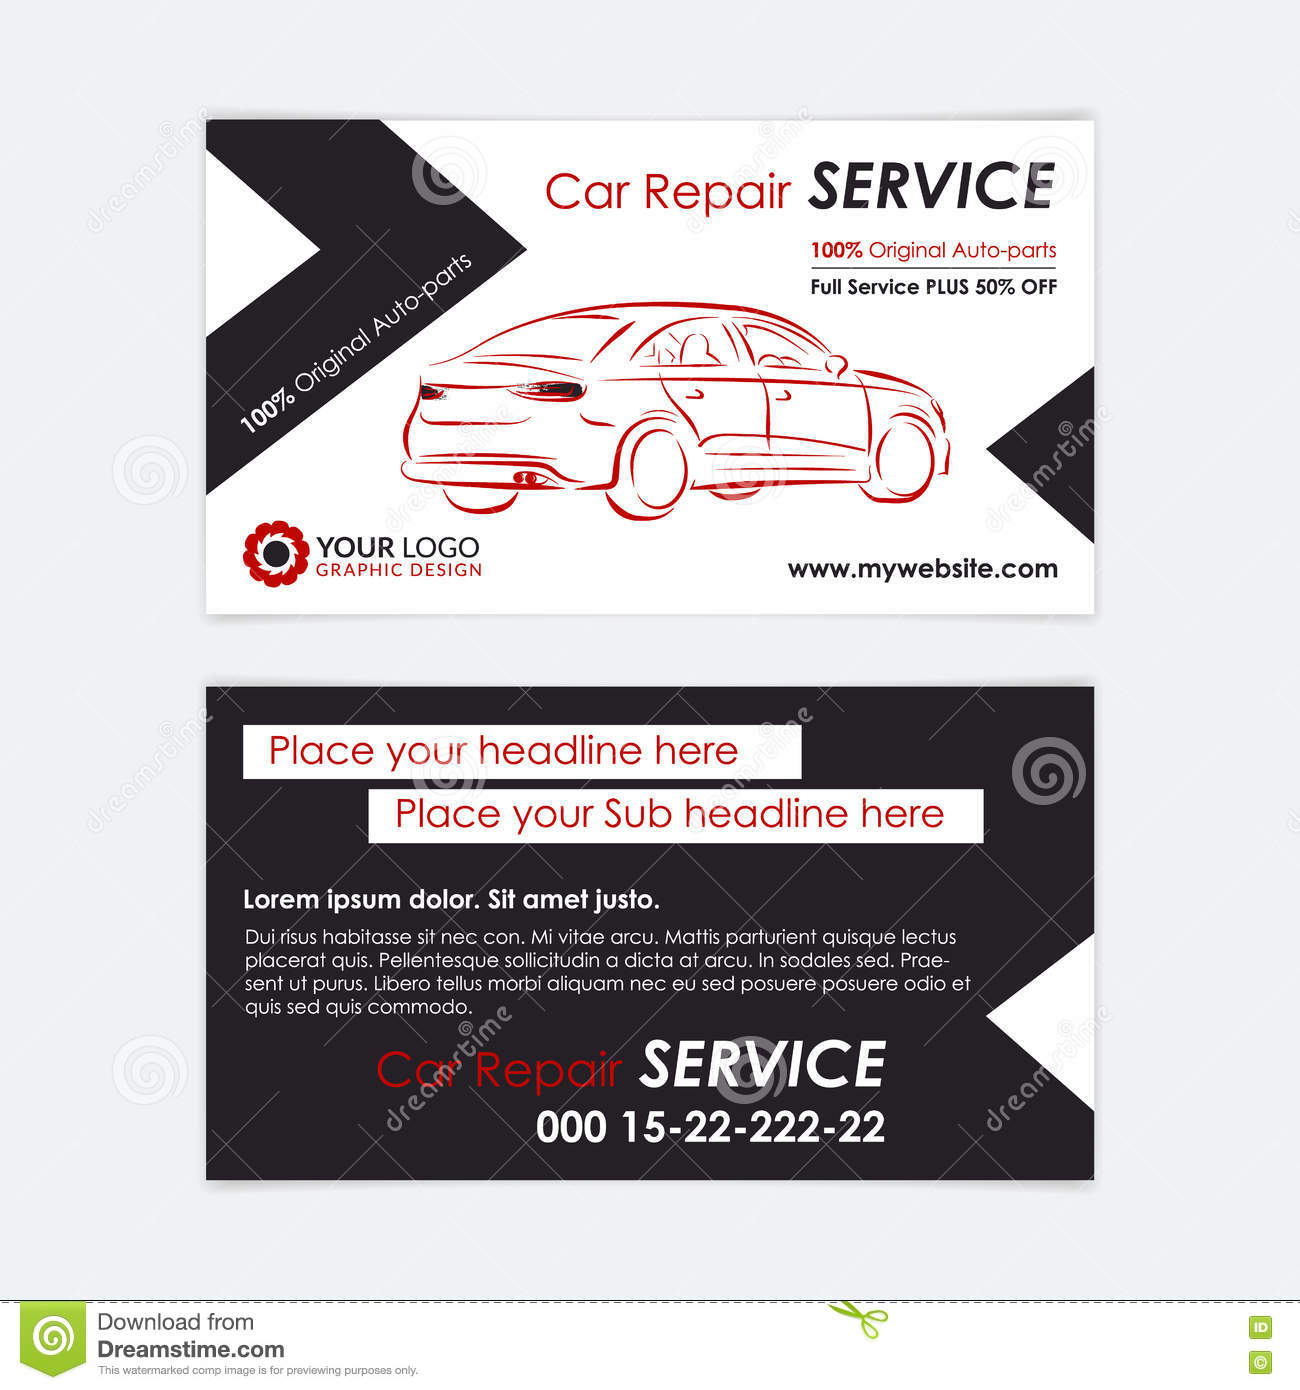 Auto repair business card template create your own business cards download auto repair business card template create your own business cards stock vector accmission Images